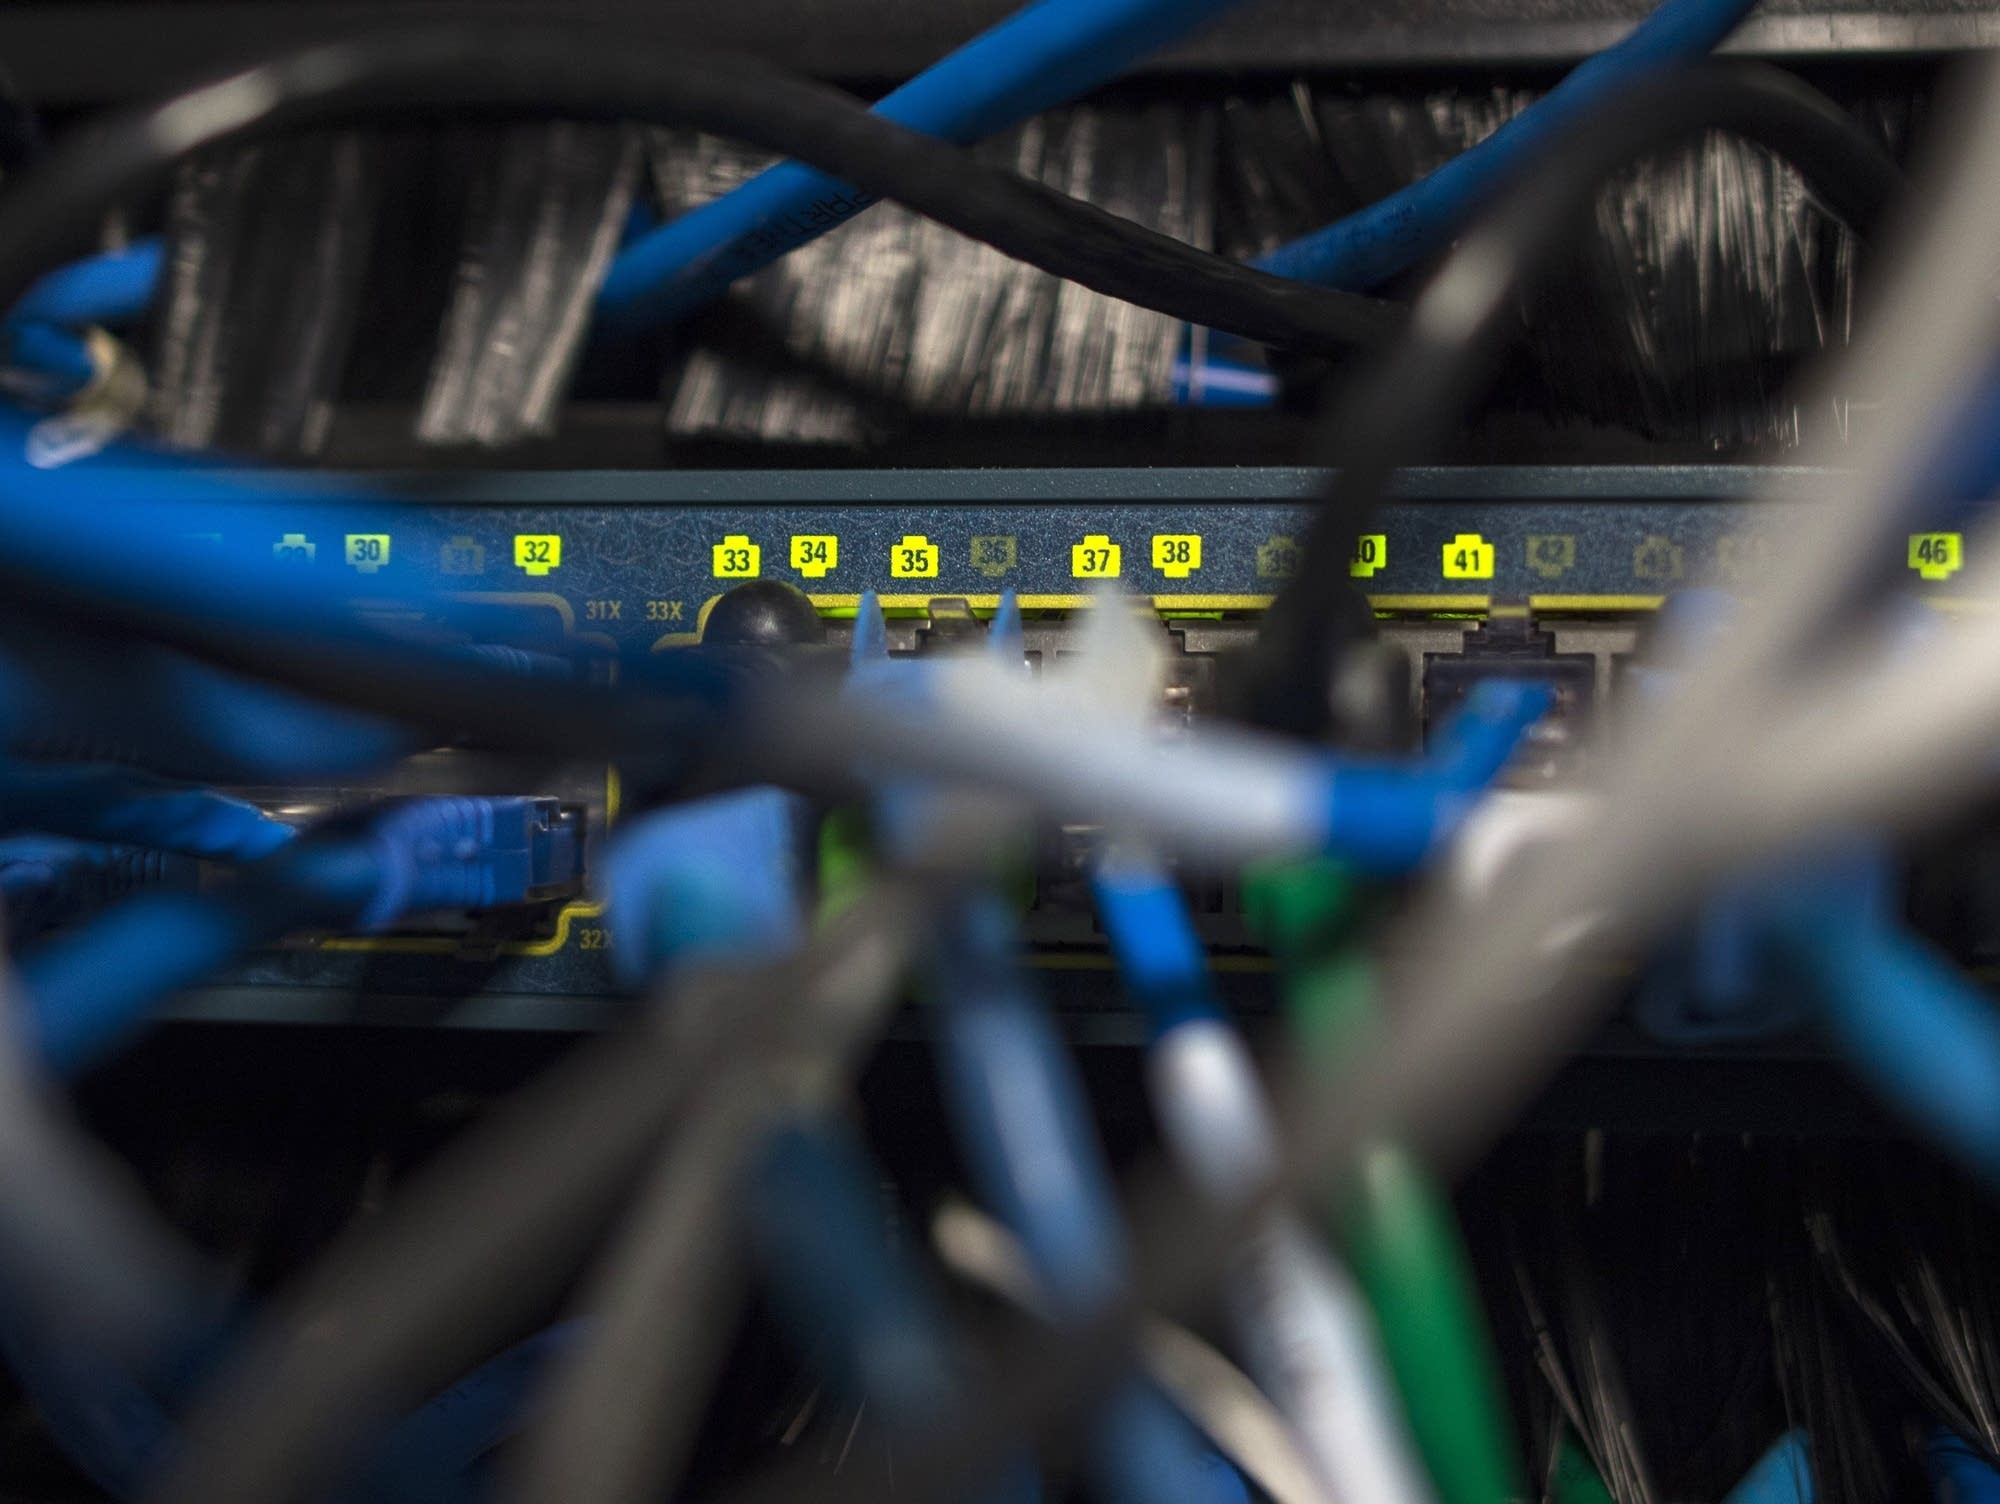 Network cables are seen going into a server in an office building.